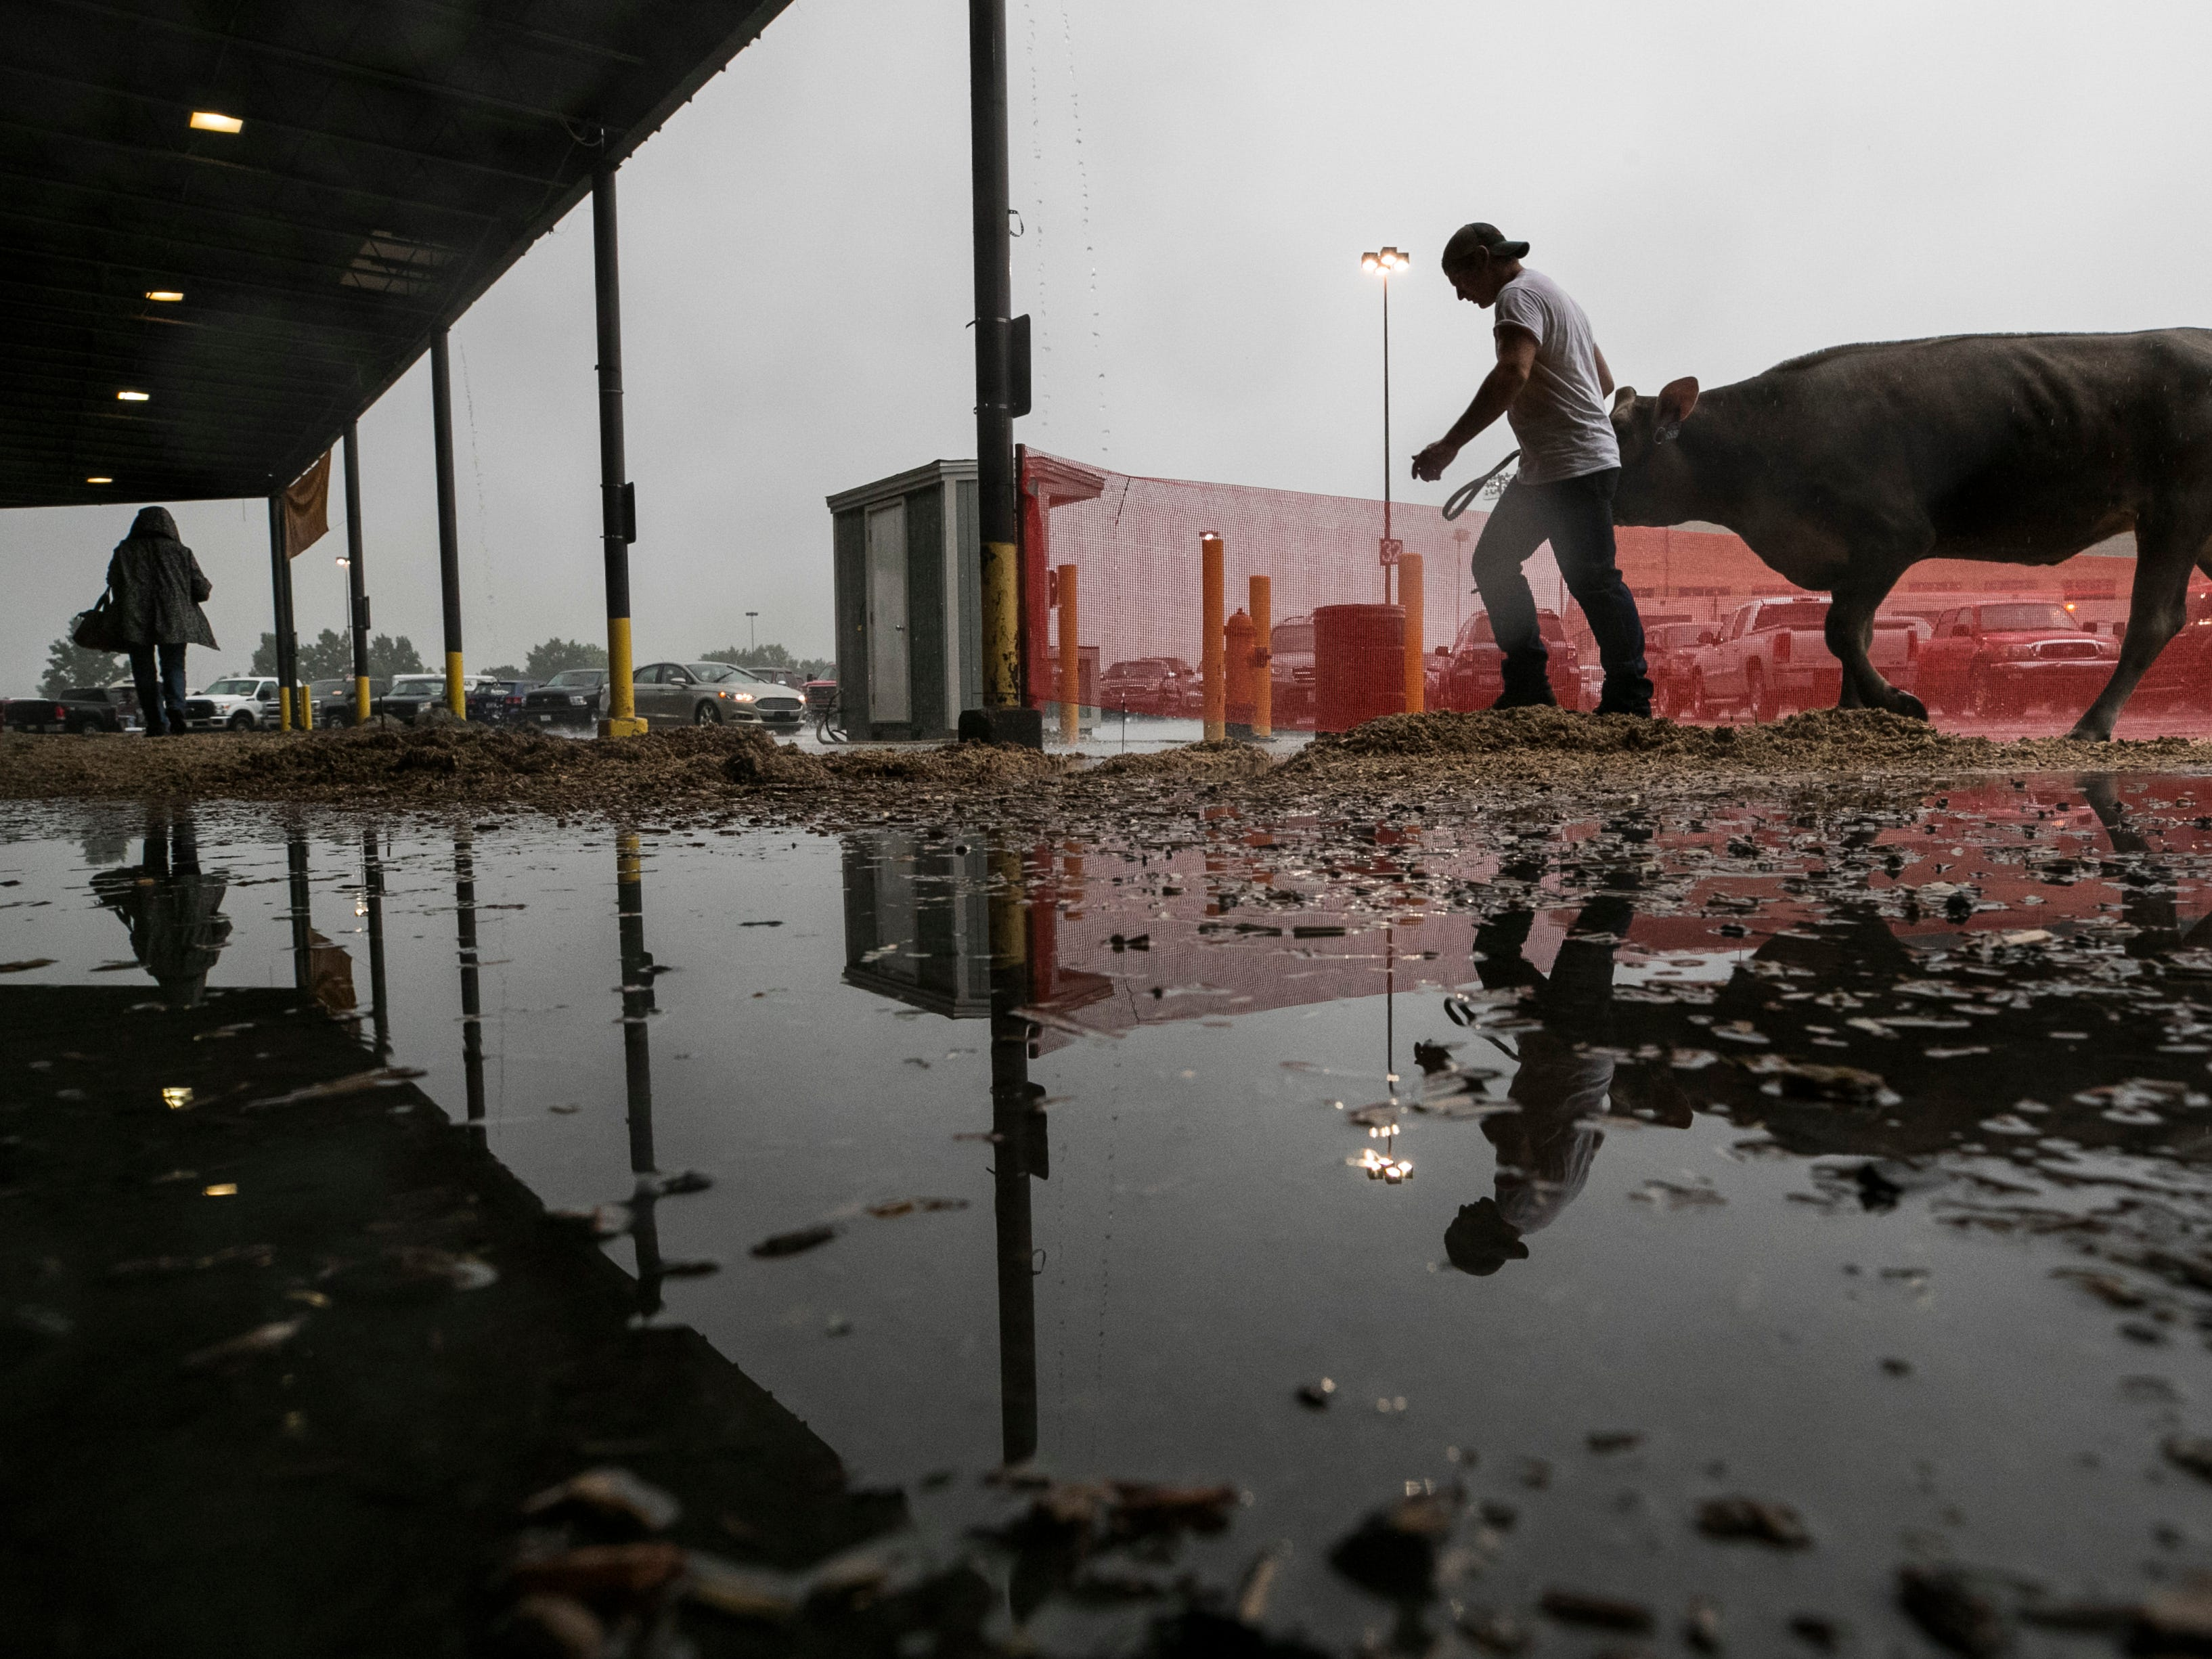 It was a wet morning as dairy cattle contestants led their animals to Broadbent Arena for judging on the opening day of the 2018 Kentucky State Fair.